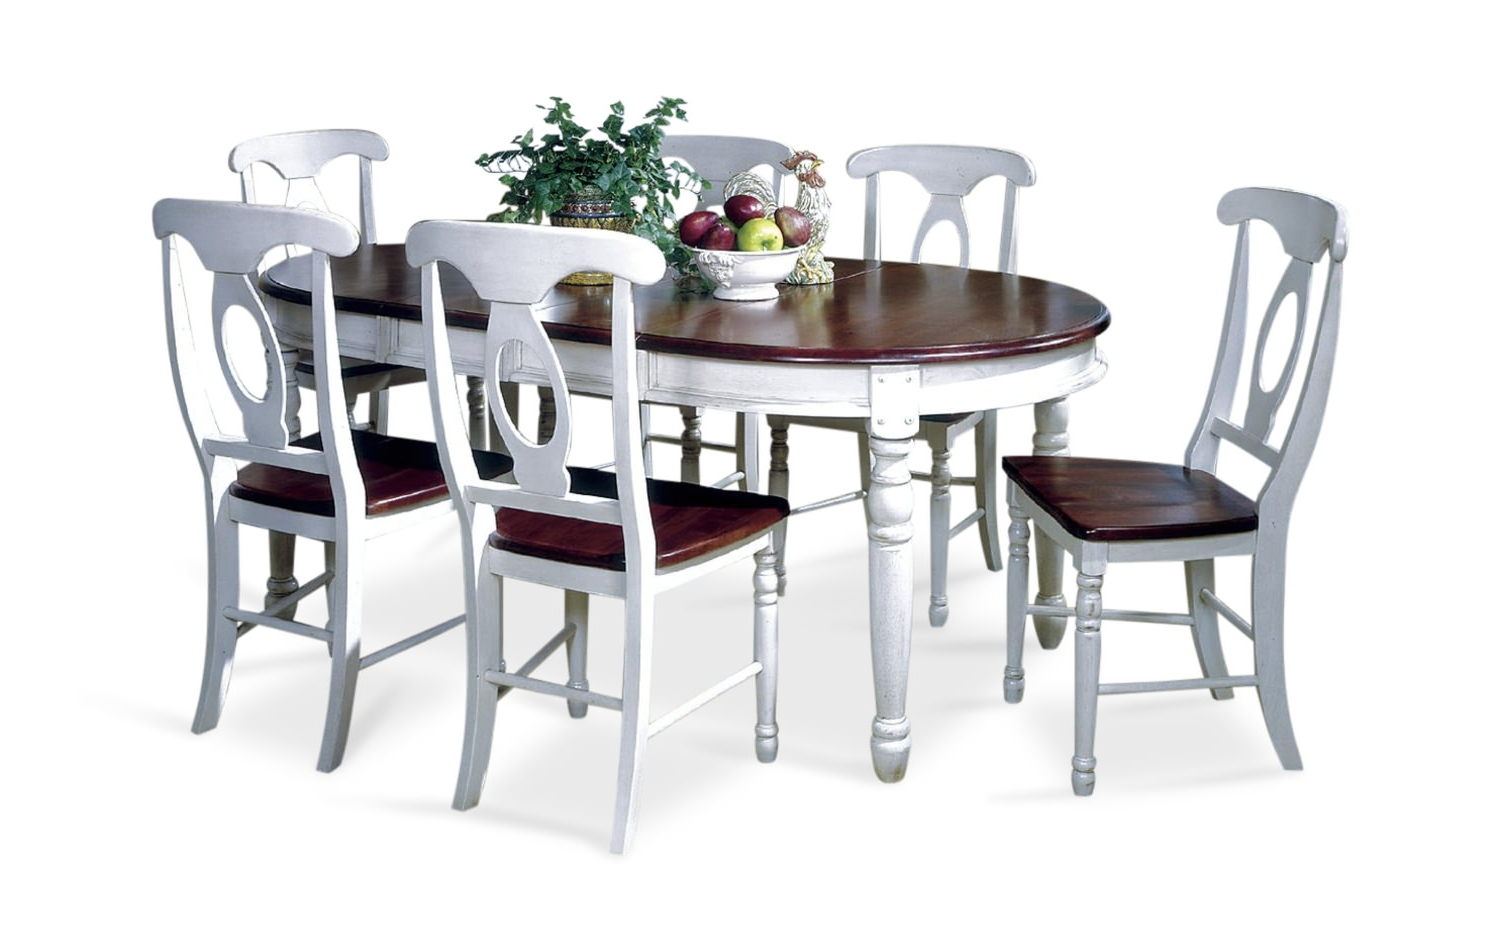 Chapleau Ii 7 Piece Extension Dining Table Sets Inside Well Known Dining Sets – Kitchen & Dining Room Sets – Hom Furniture (View 15 of 25)